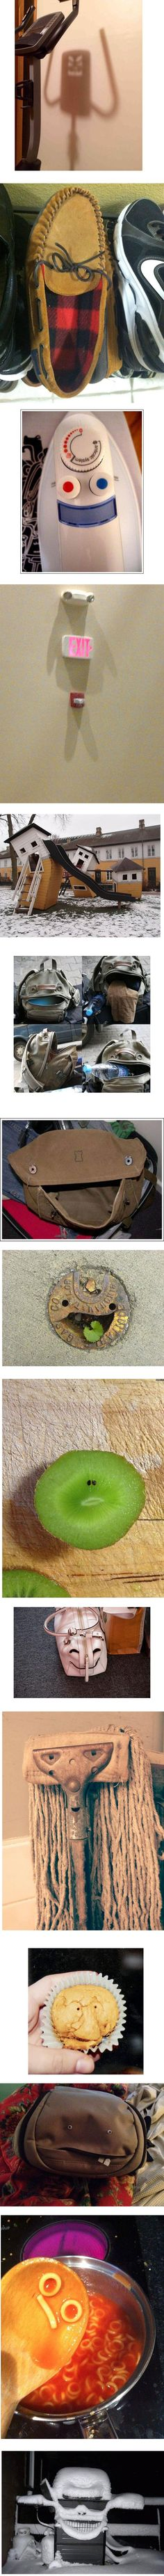 15 Faces Found in Inanimate Objects